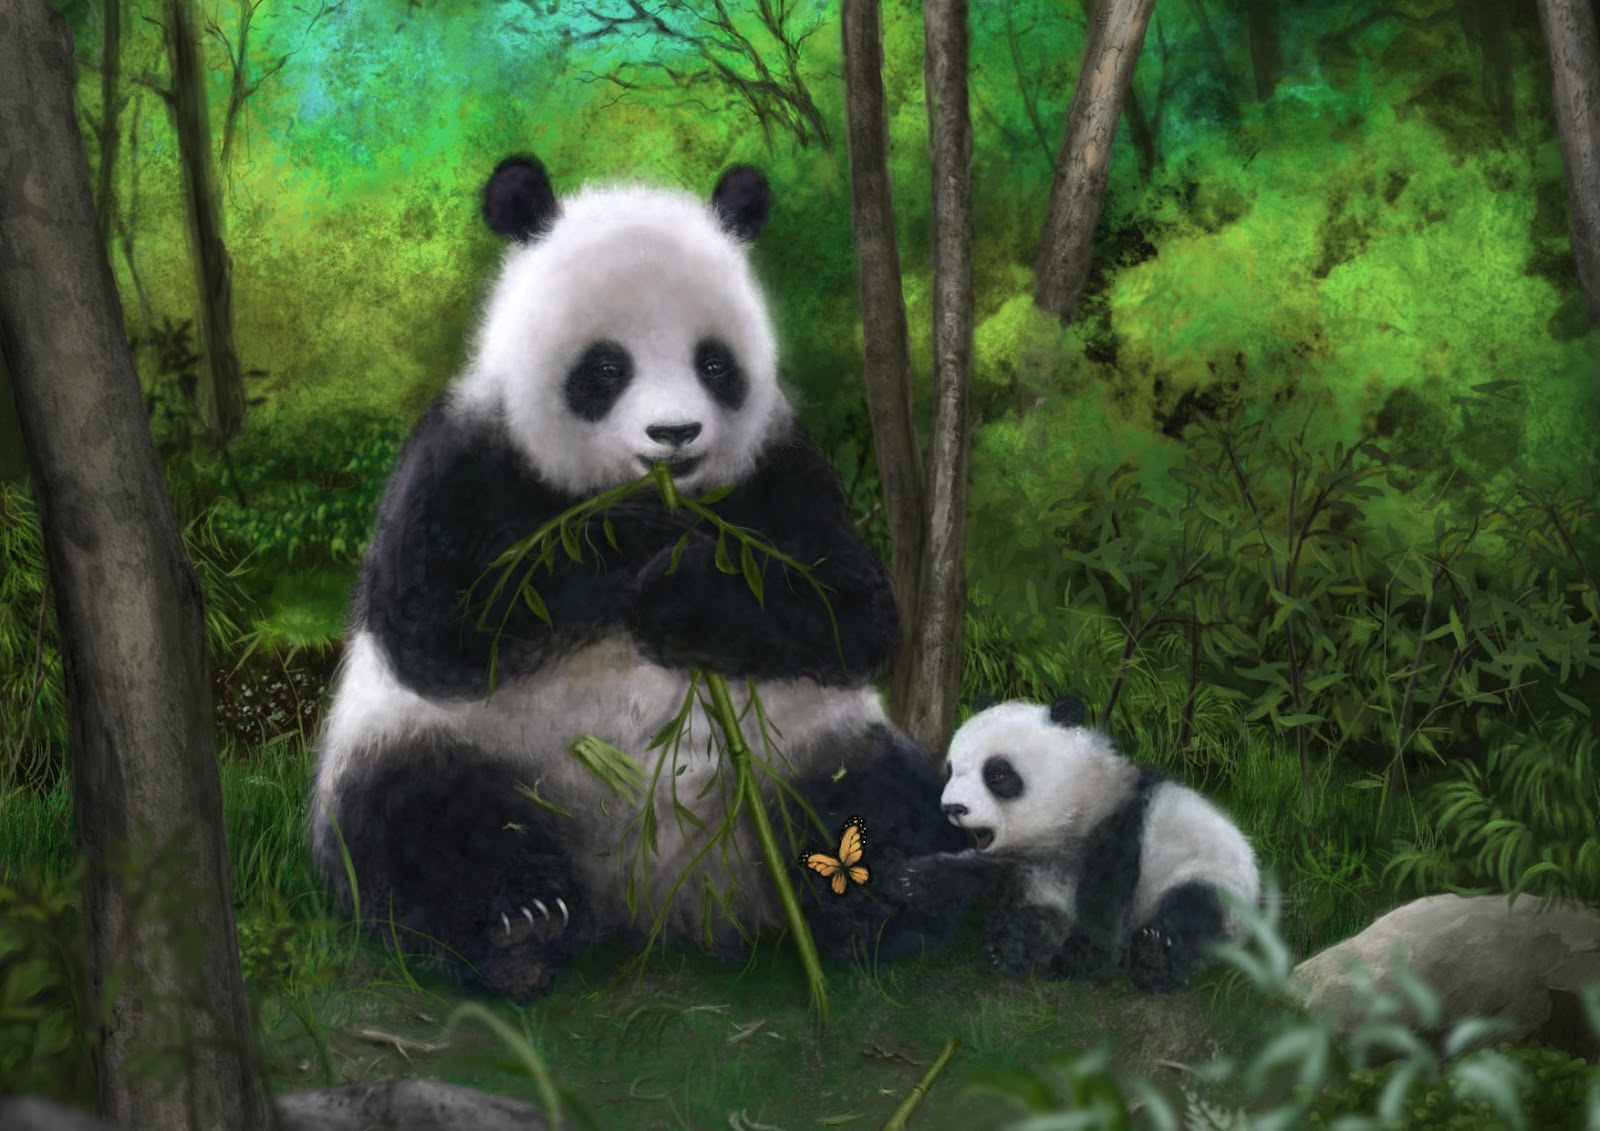 panda bear diagram toro ccr 2000 parts funny pictures gallery giant free